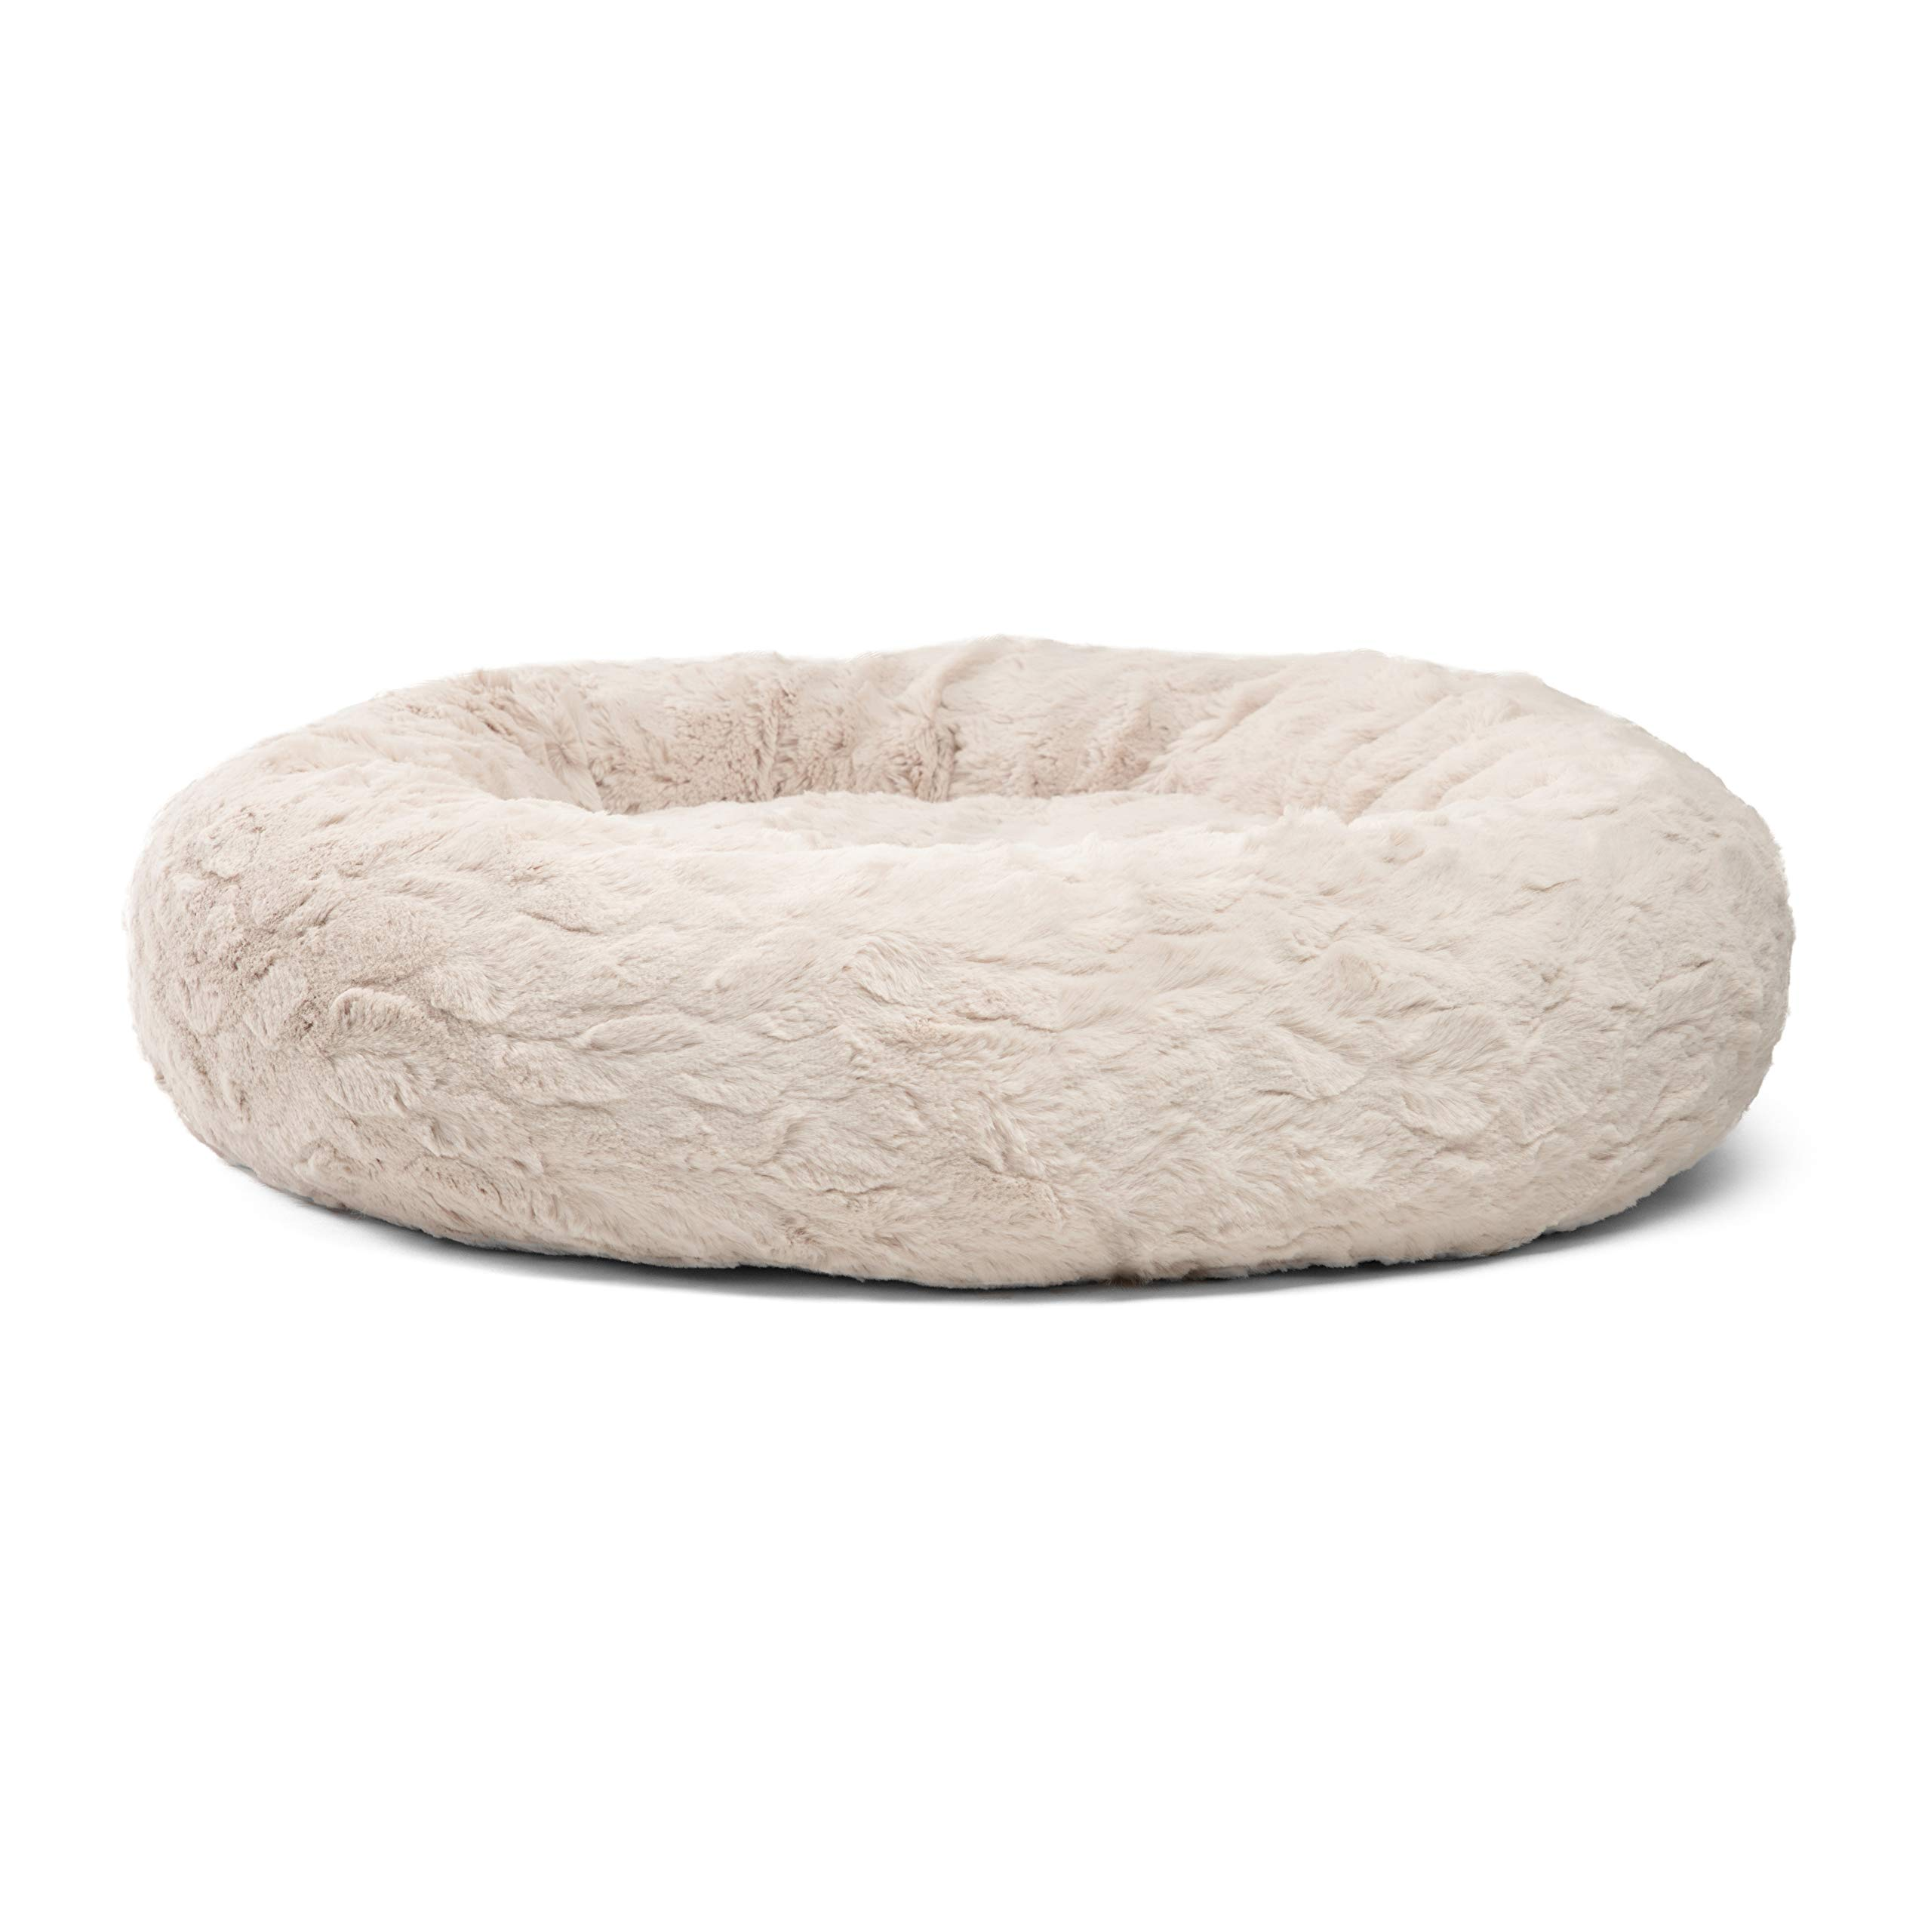 Best Friends by Sheri Donut Cuddler in Lux Fur Dog Bed/Cat Bed, 30''X30'', Oyster